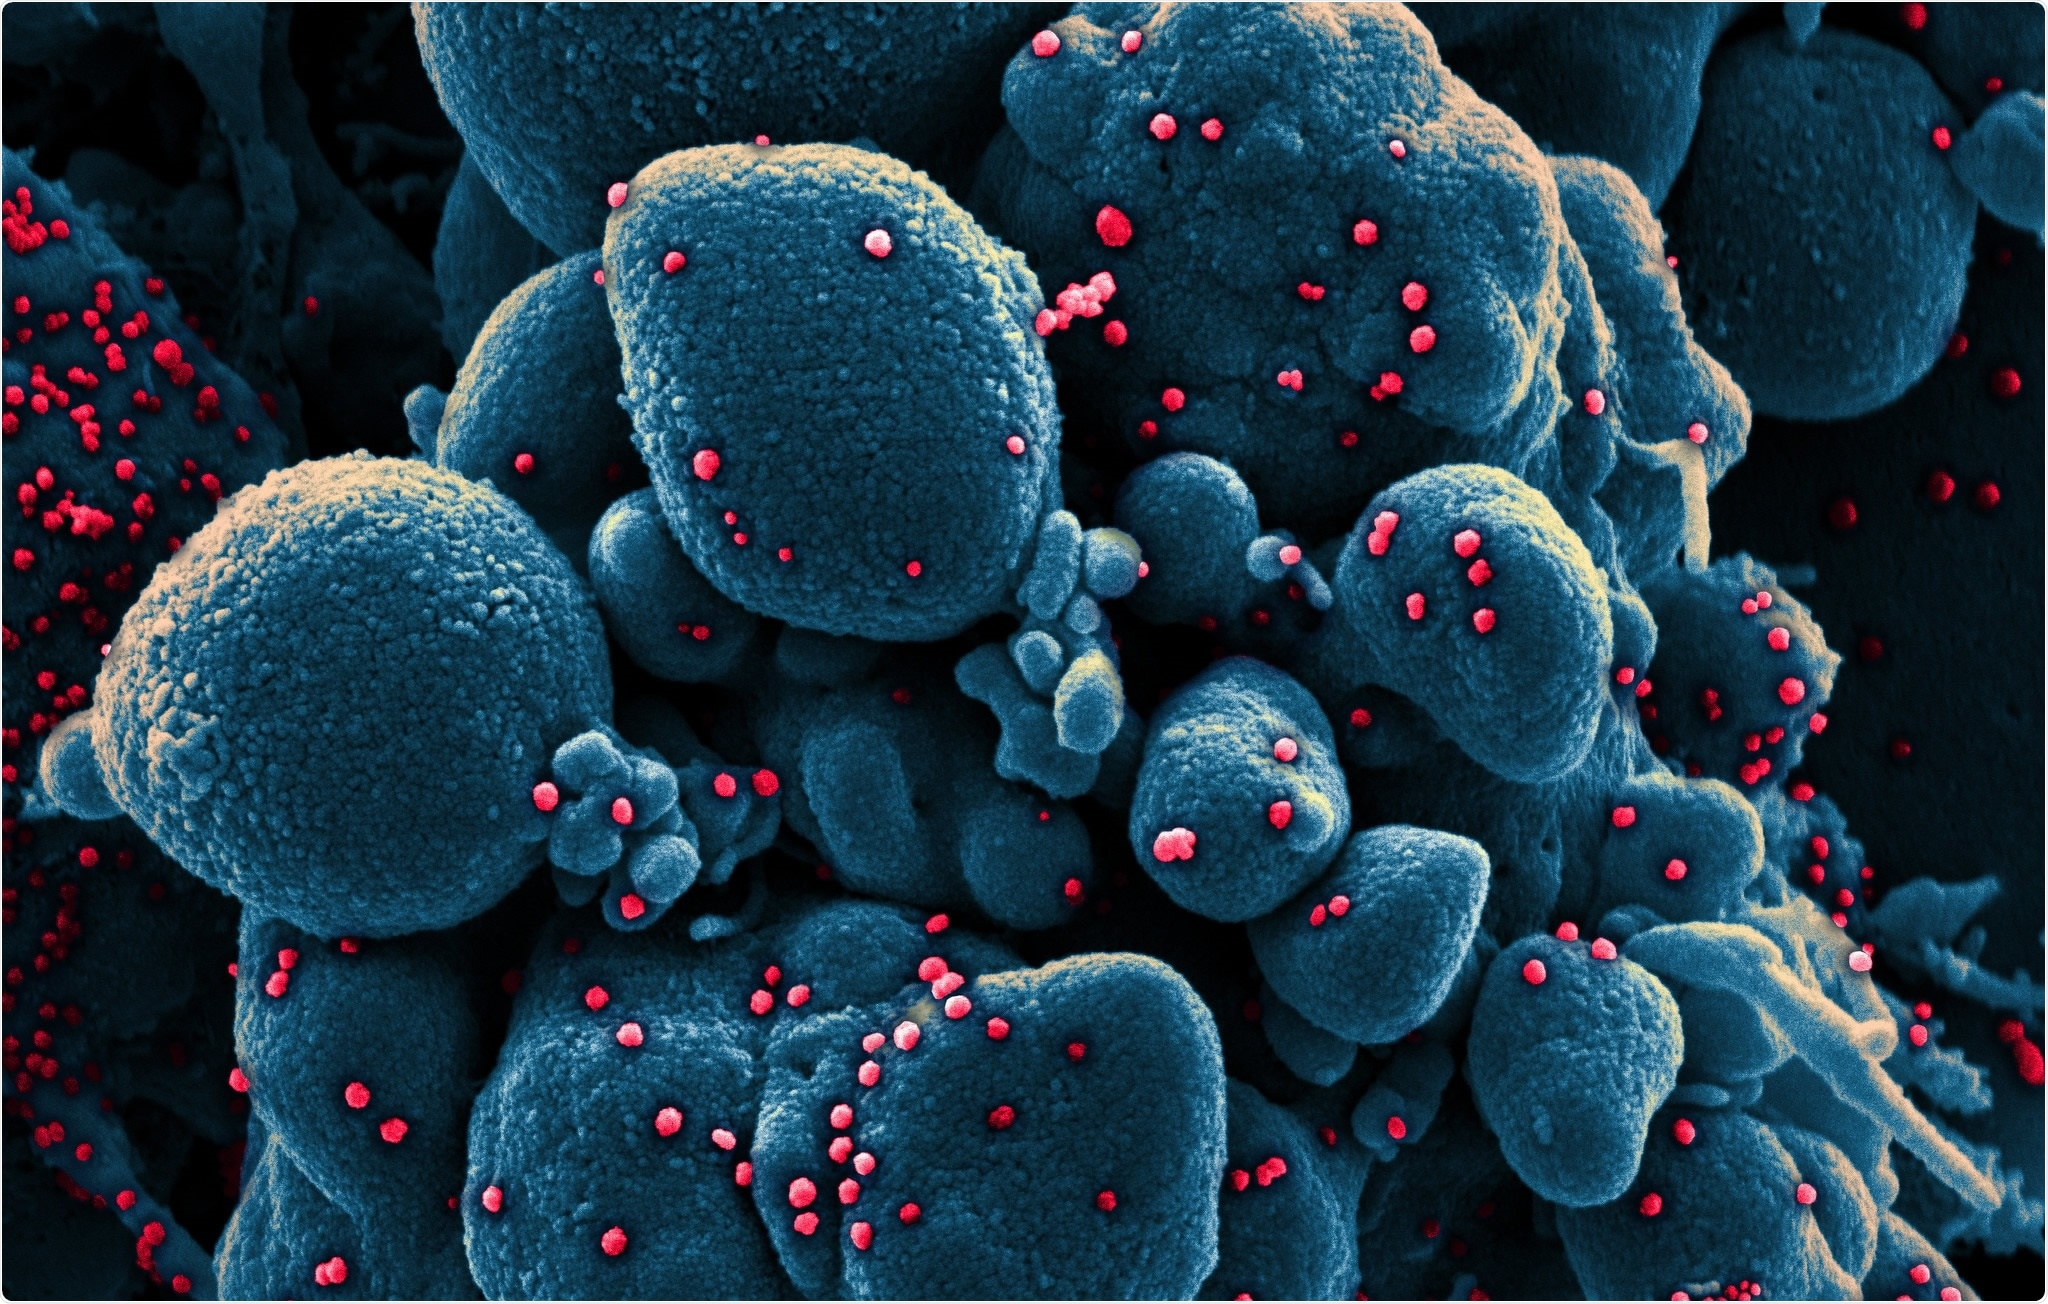 Colorized scanning electron micrograph of an apoptotic cell (blue) infected with SARS-COV-2 virus particles (red), isolated from a patient sample. Image captured at the NIAID Integrated Research Facility (IRF) in Fort Detrick, Maryland. Credit: NIAID